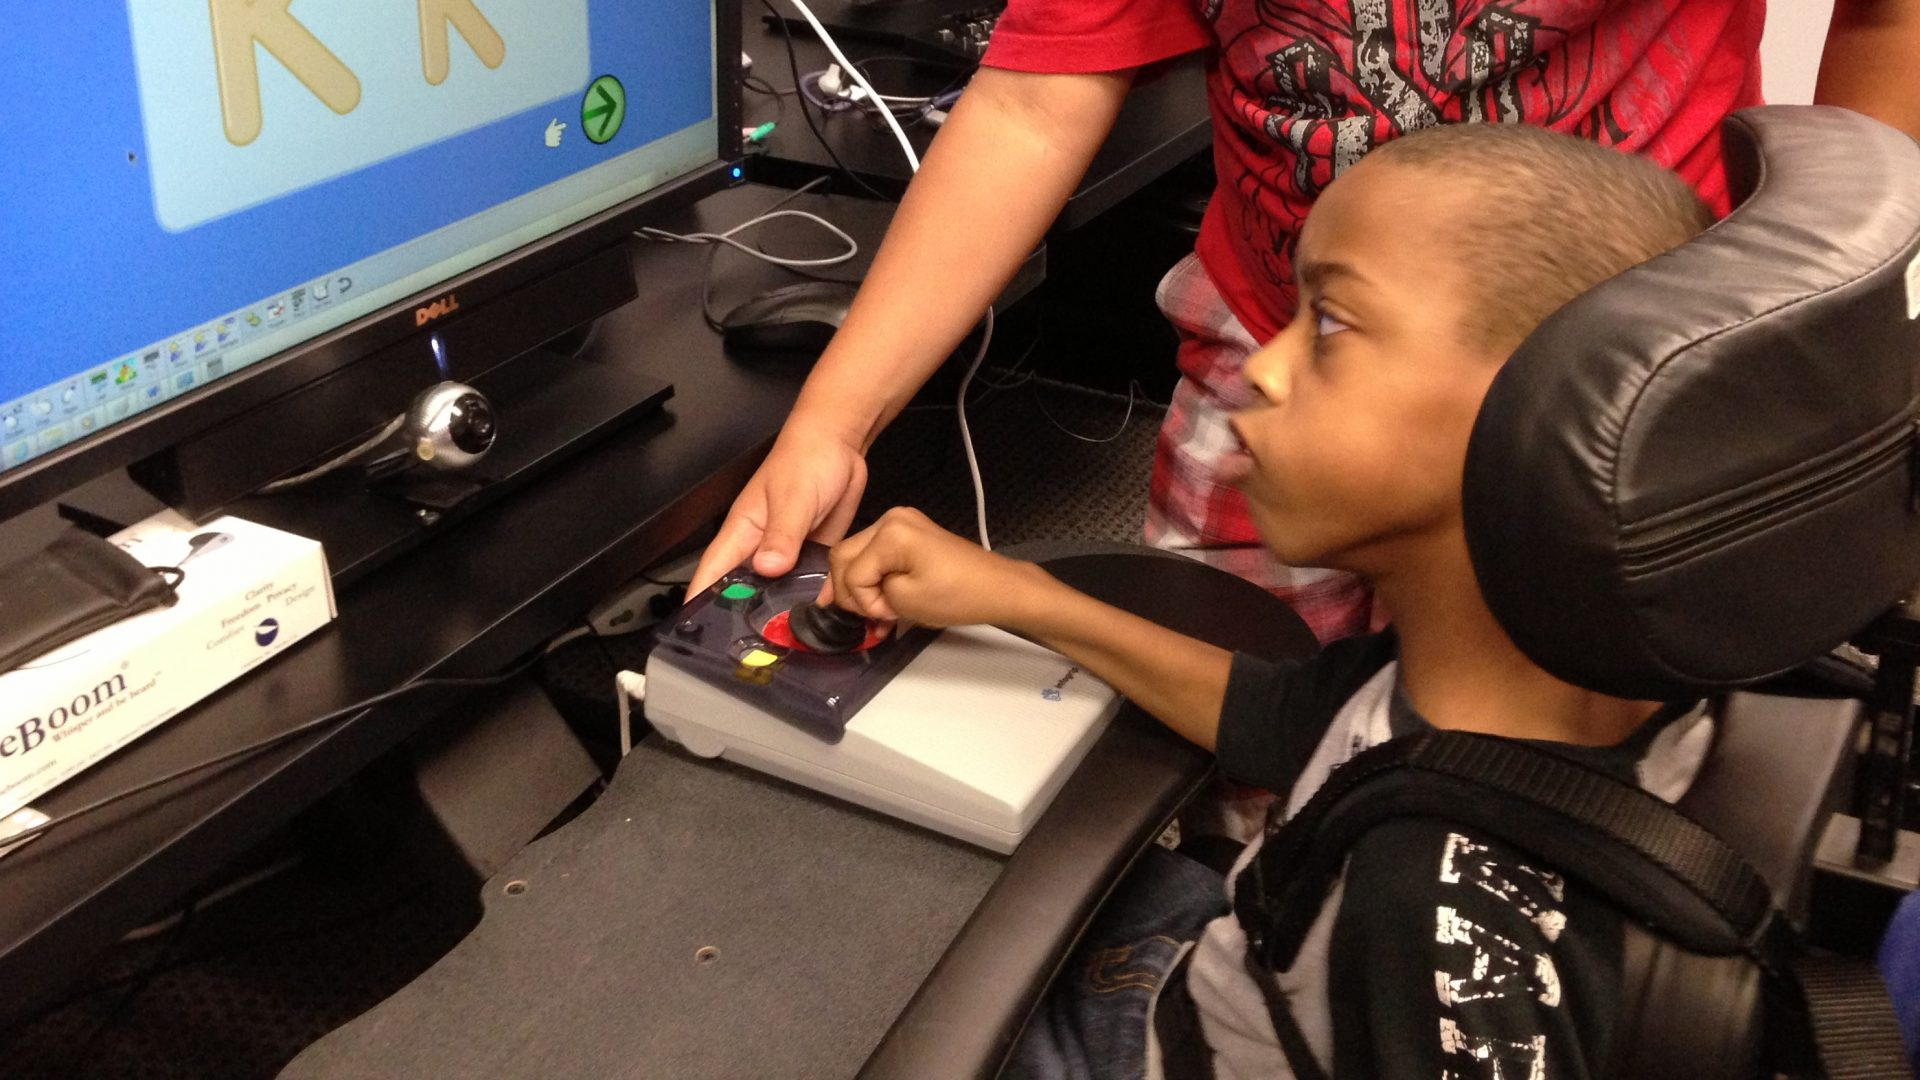 African American boy with Joystick Pro and computer monitor